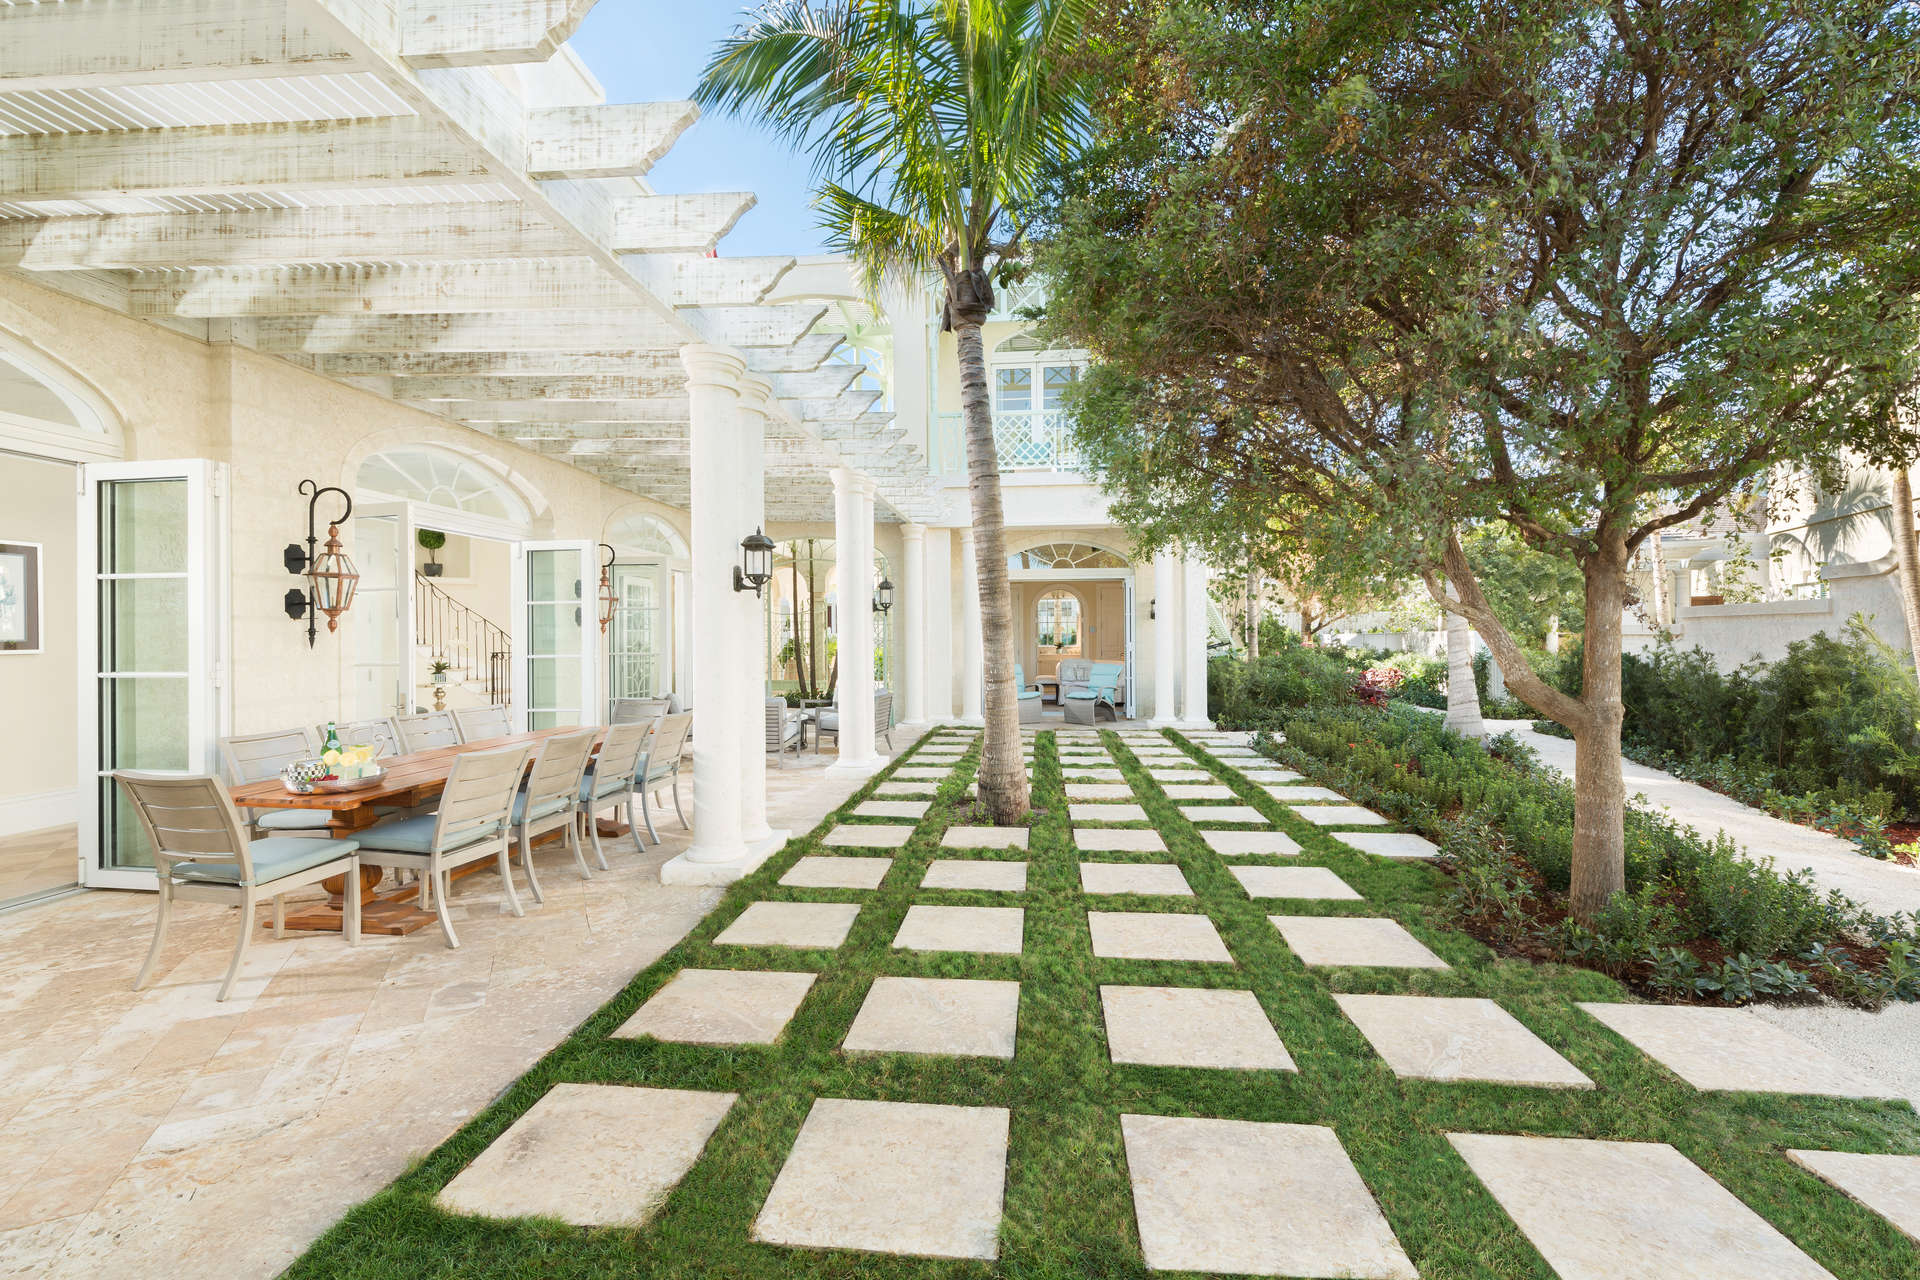 Luxury villa rentals caribbean - Turks and caicos - Providenciales - The shore club turks and caicos - Private 4 BDM - Image 1/15